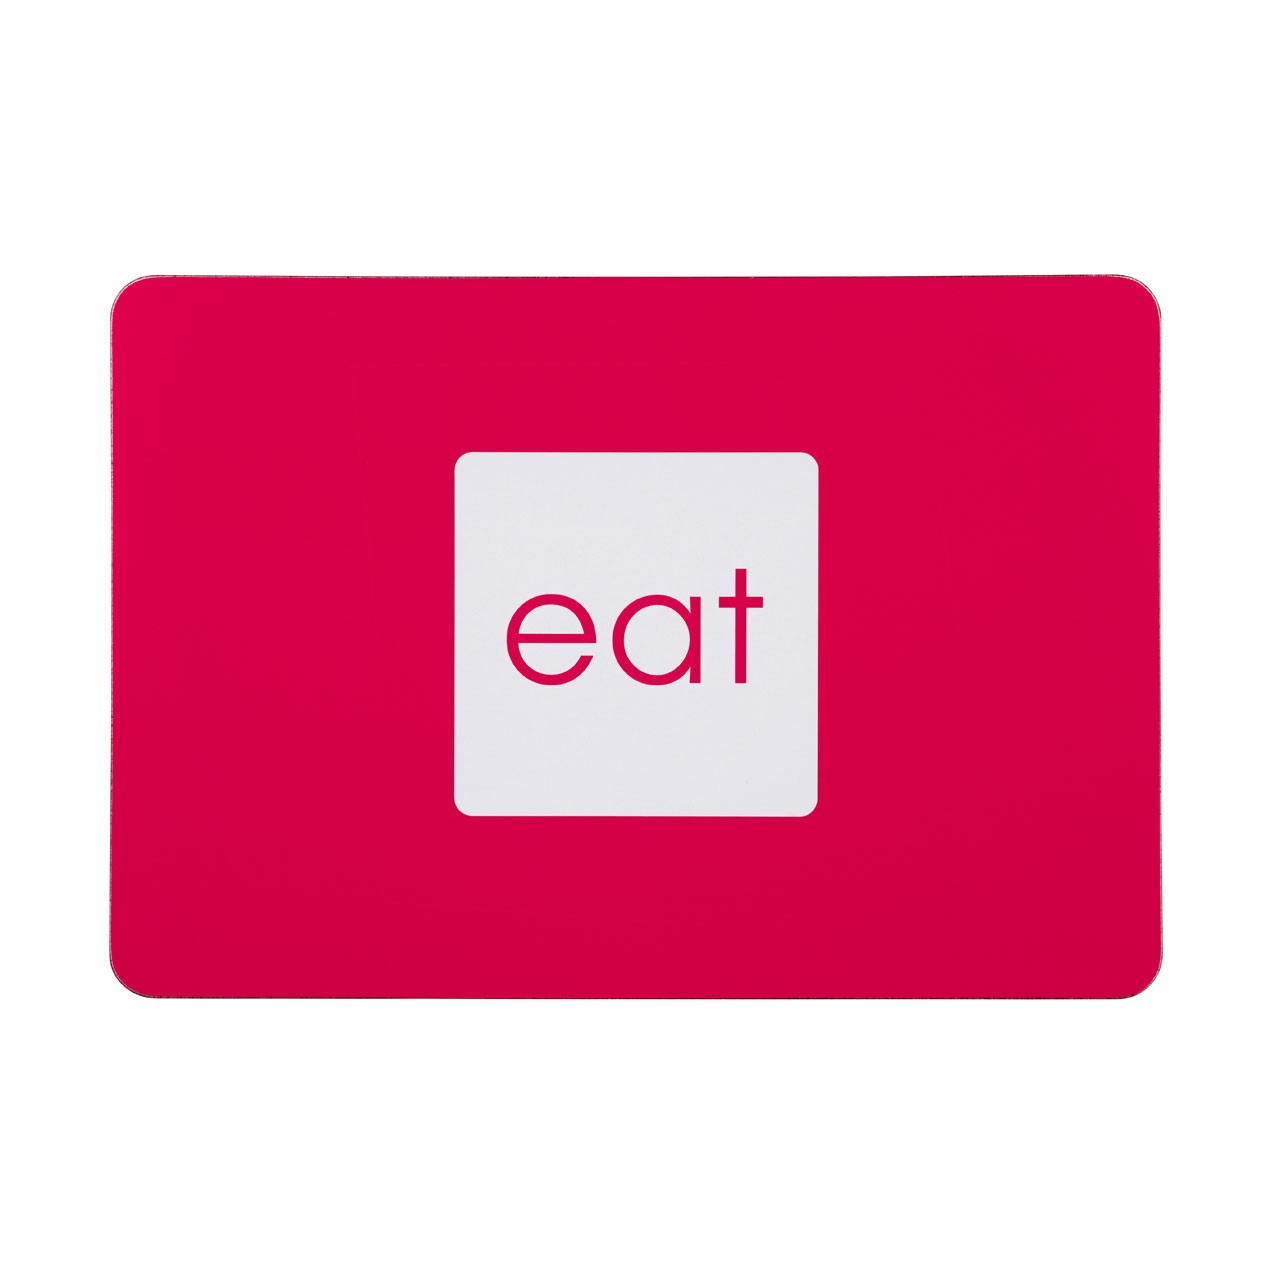 Eat Placemats - Hot Pink, Set of 4